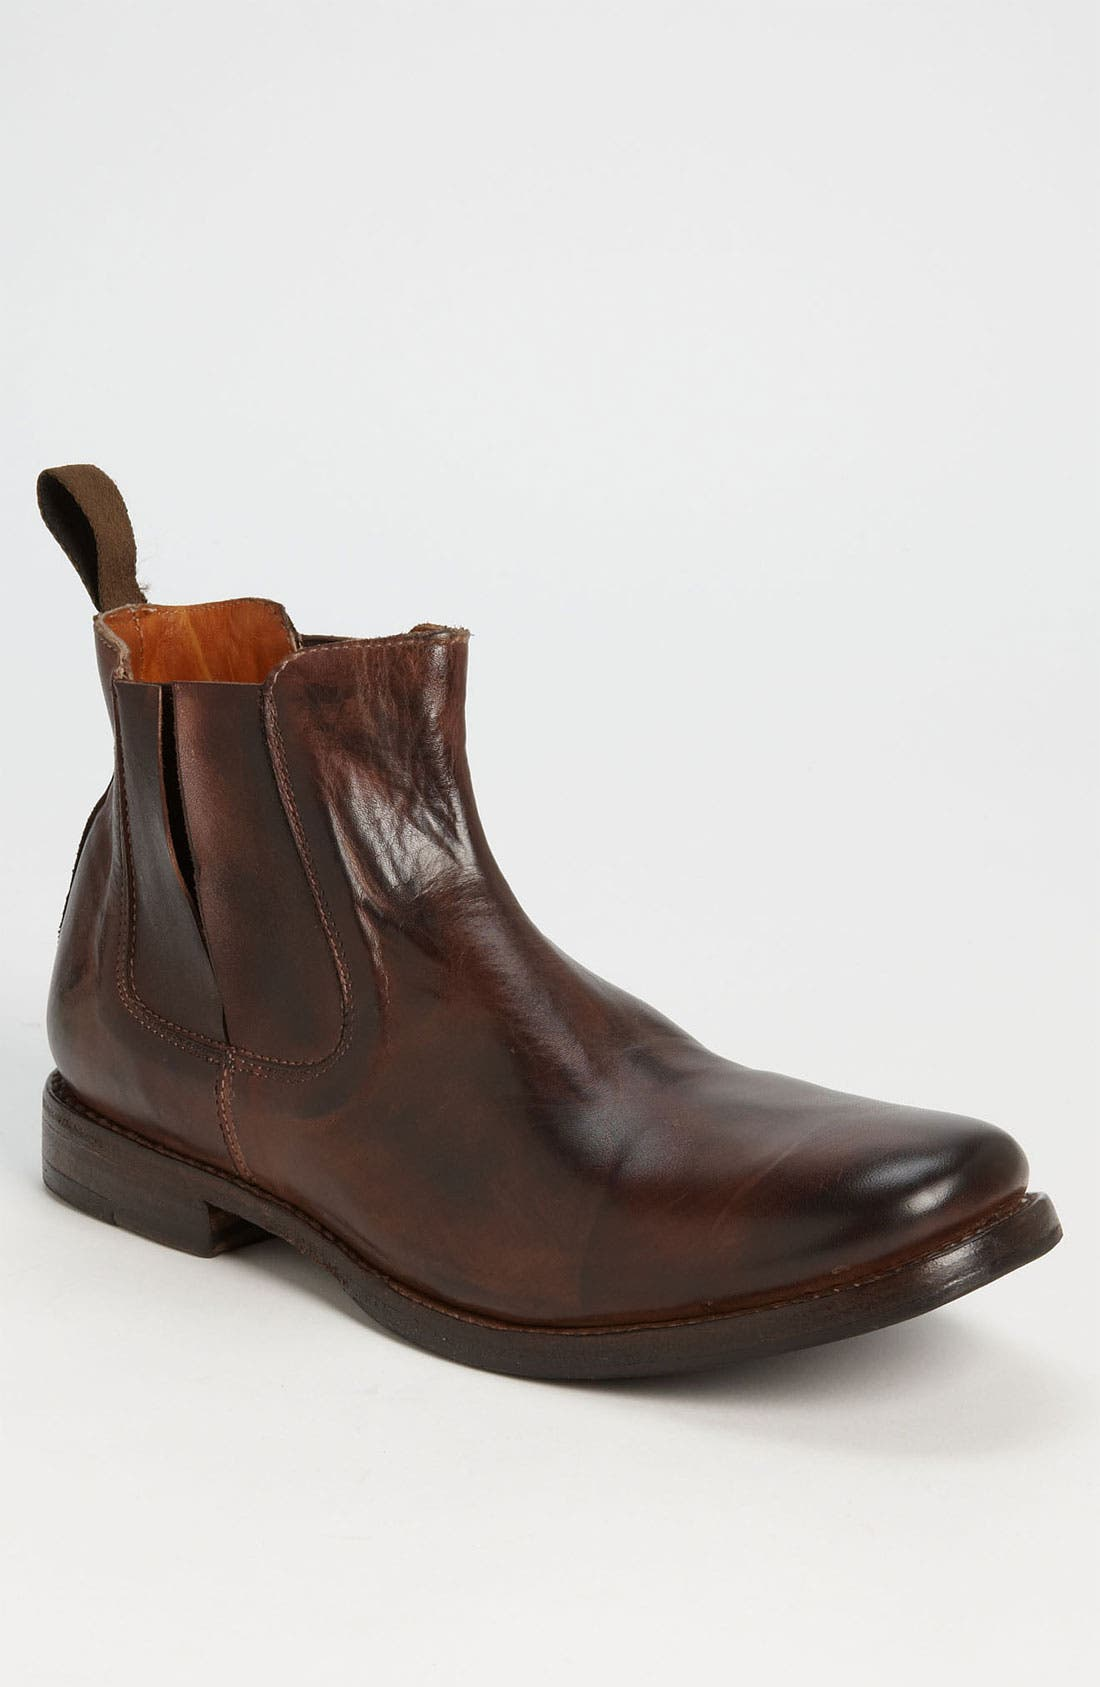 Alternate Image 1 Selected - Bed Stu 'Taurus II' Chelsea Boot